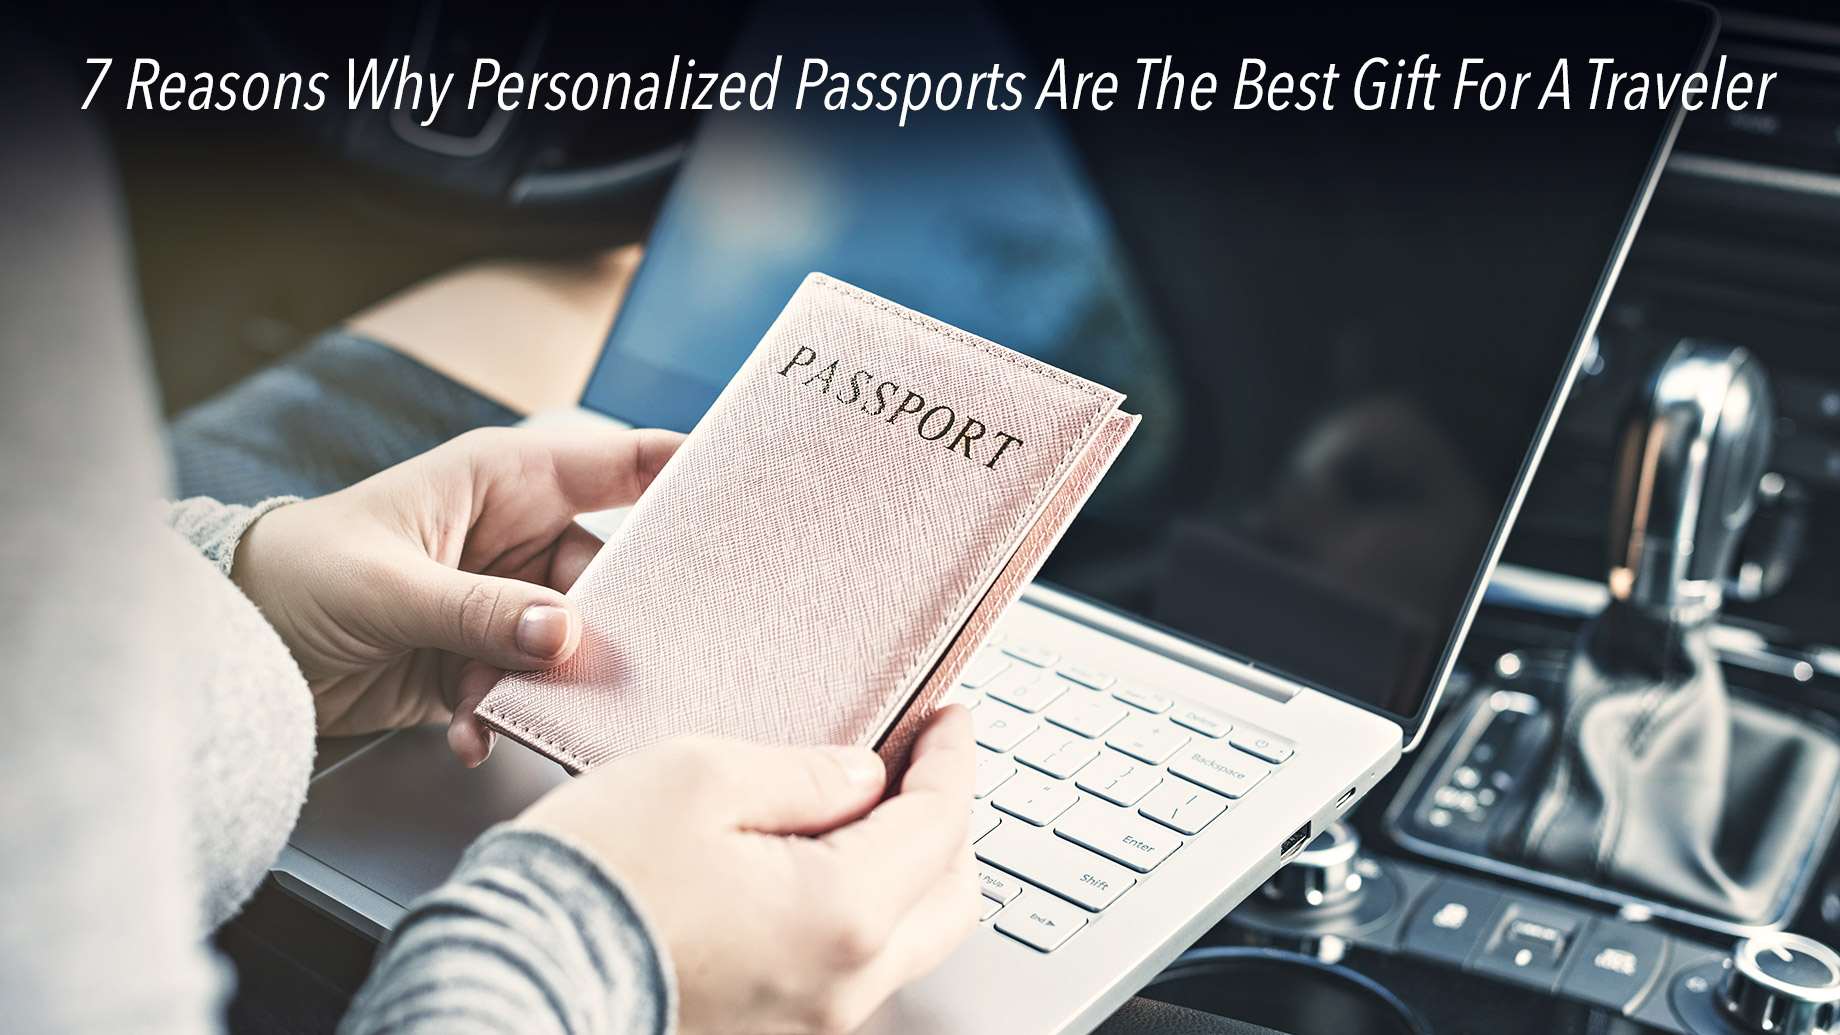 7 Reasons Why Personalized Passports Are The Best Gift For A Traveler